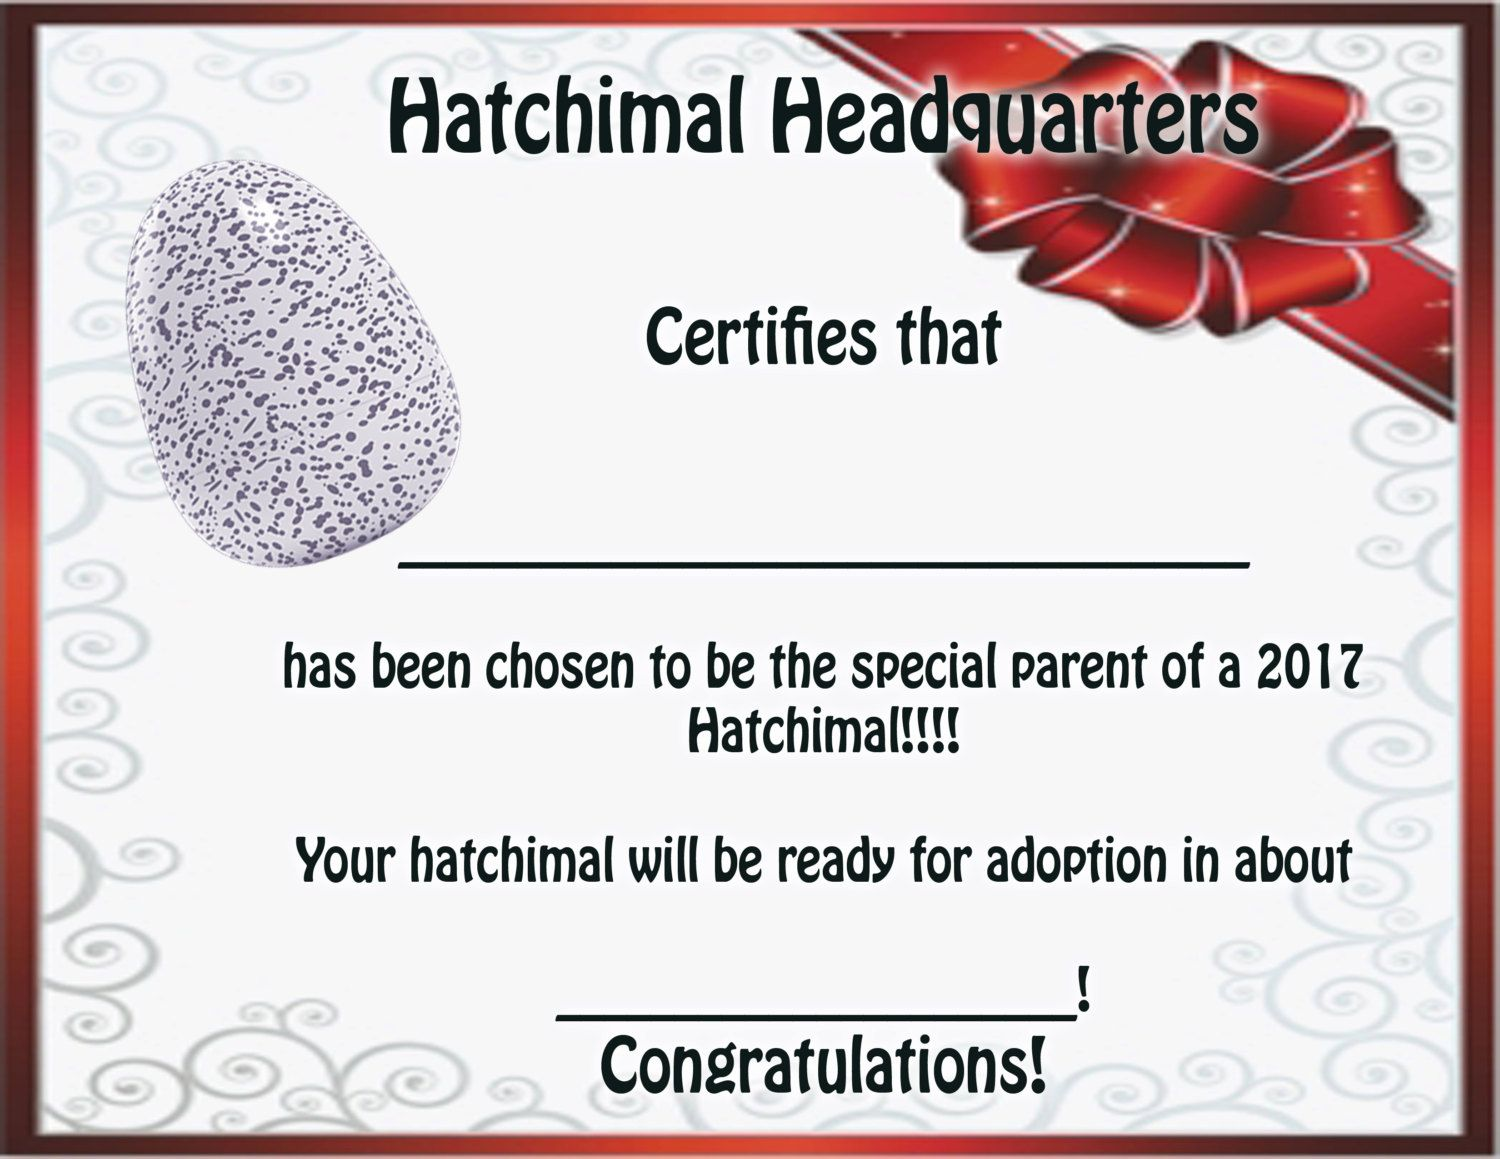 hatchimals iou alternative hatchimal